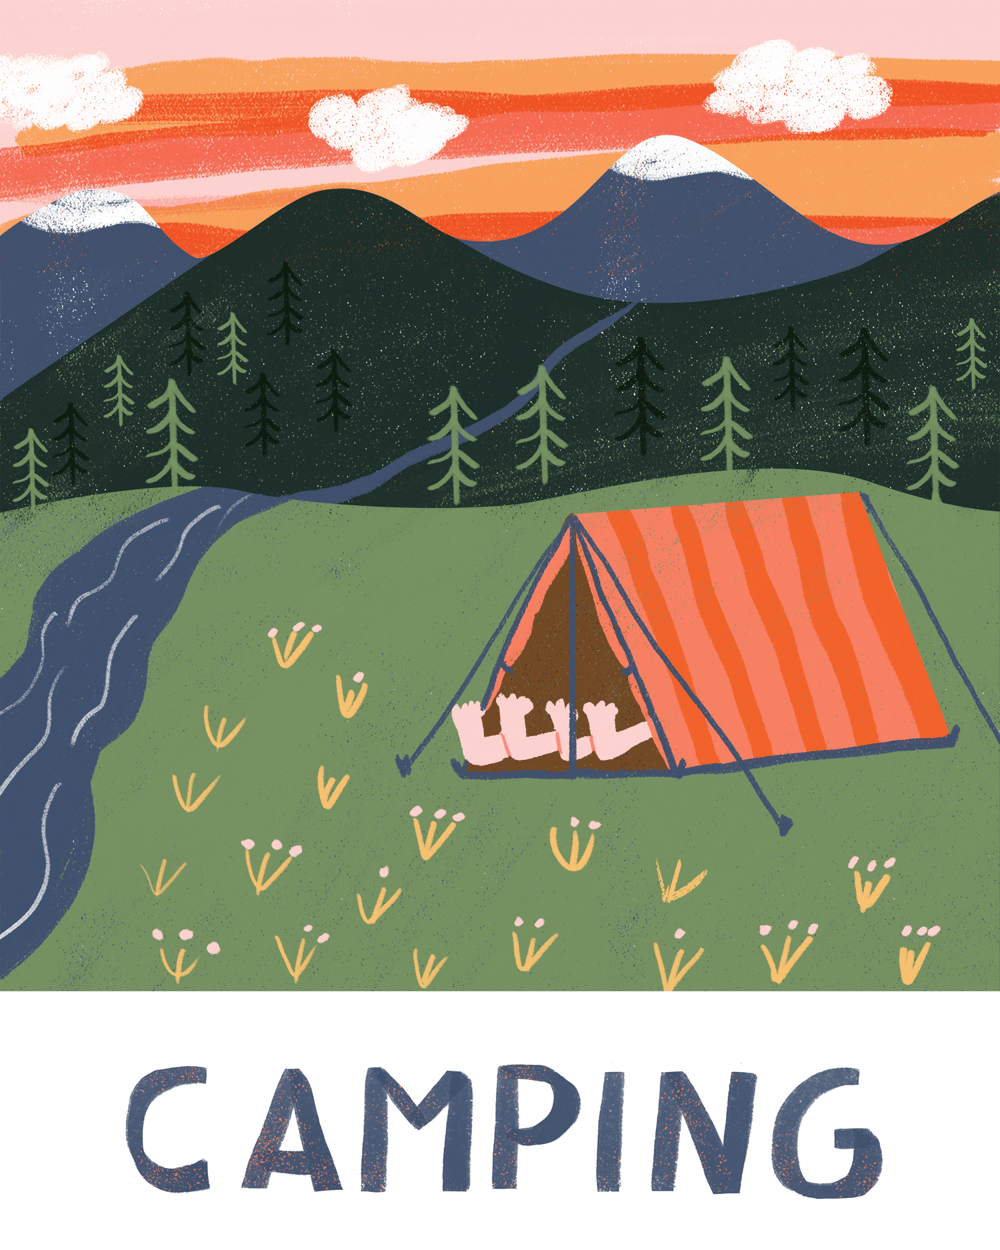 Alpine & Camping - image 2 - student project